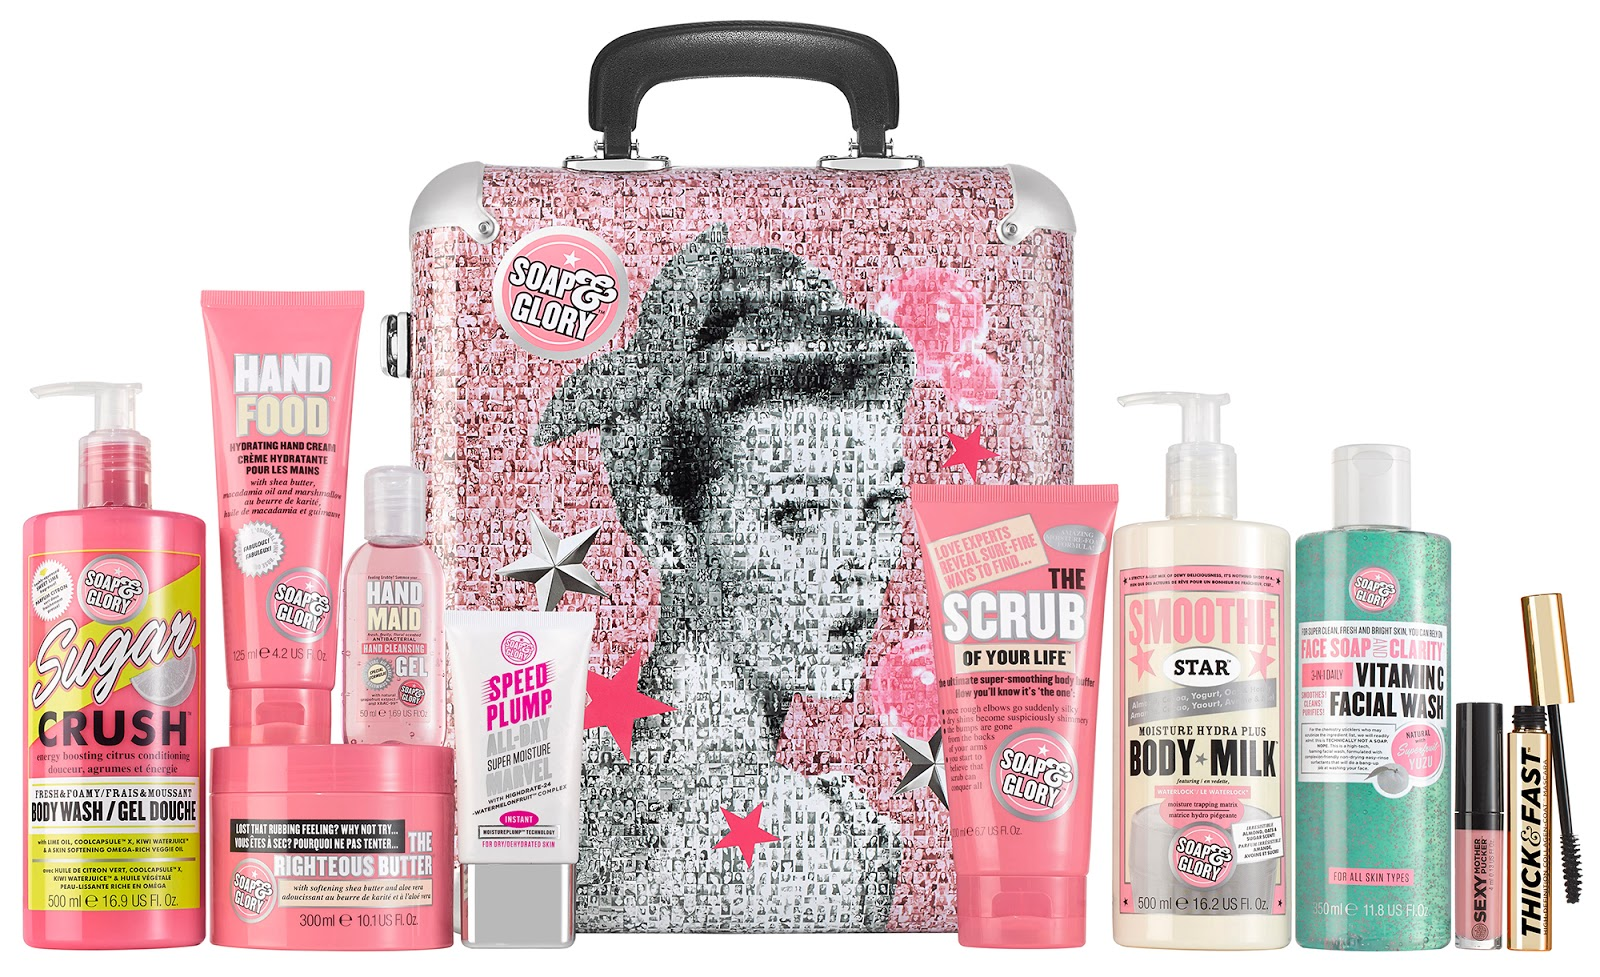 Soap & Glory The Whole Glam Lot star gift 2016 contents and review